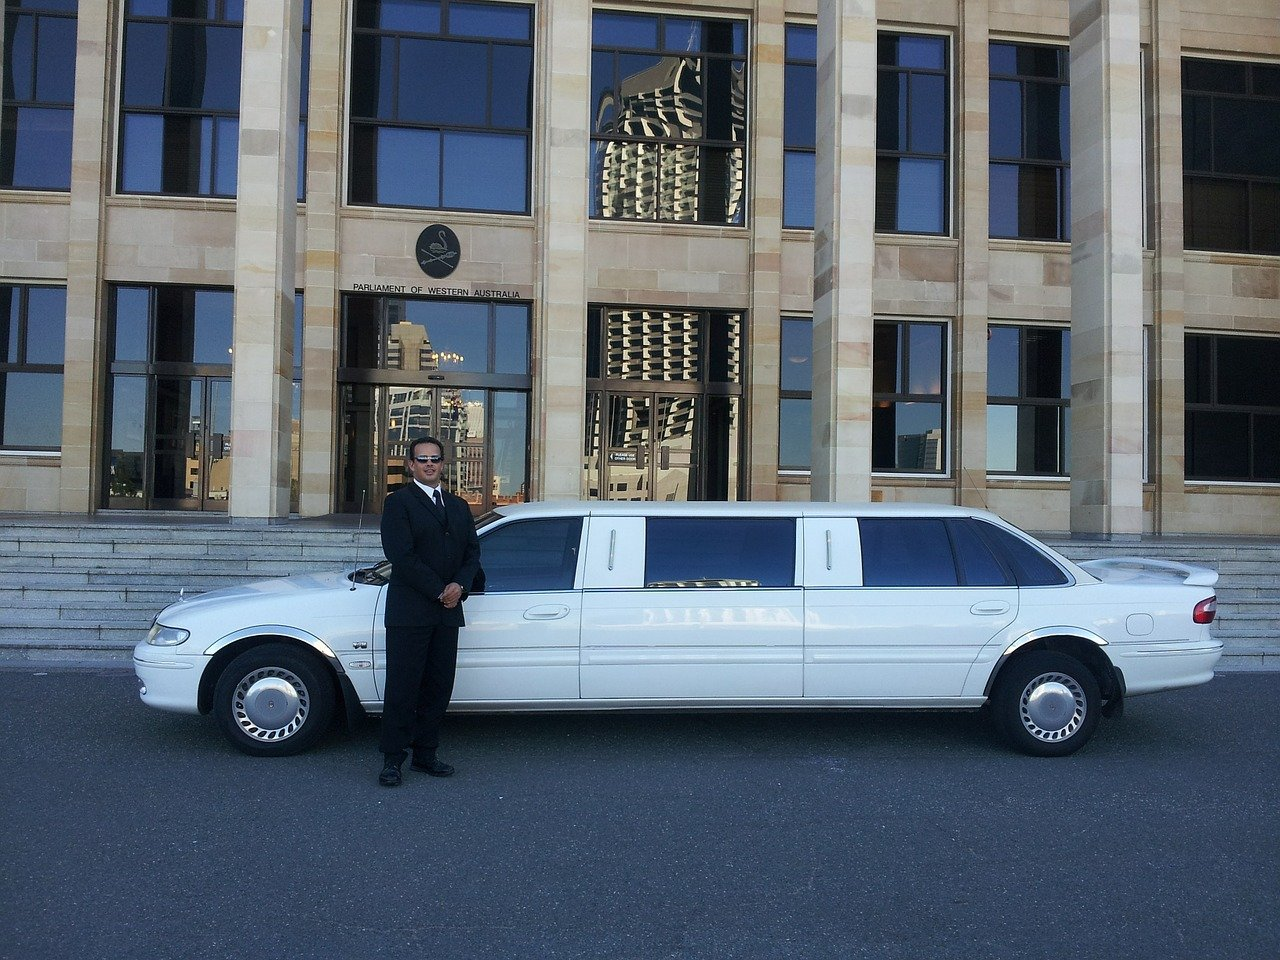 New York City in a Limousine